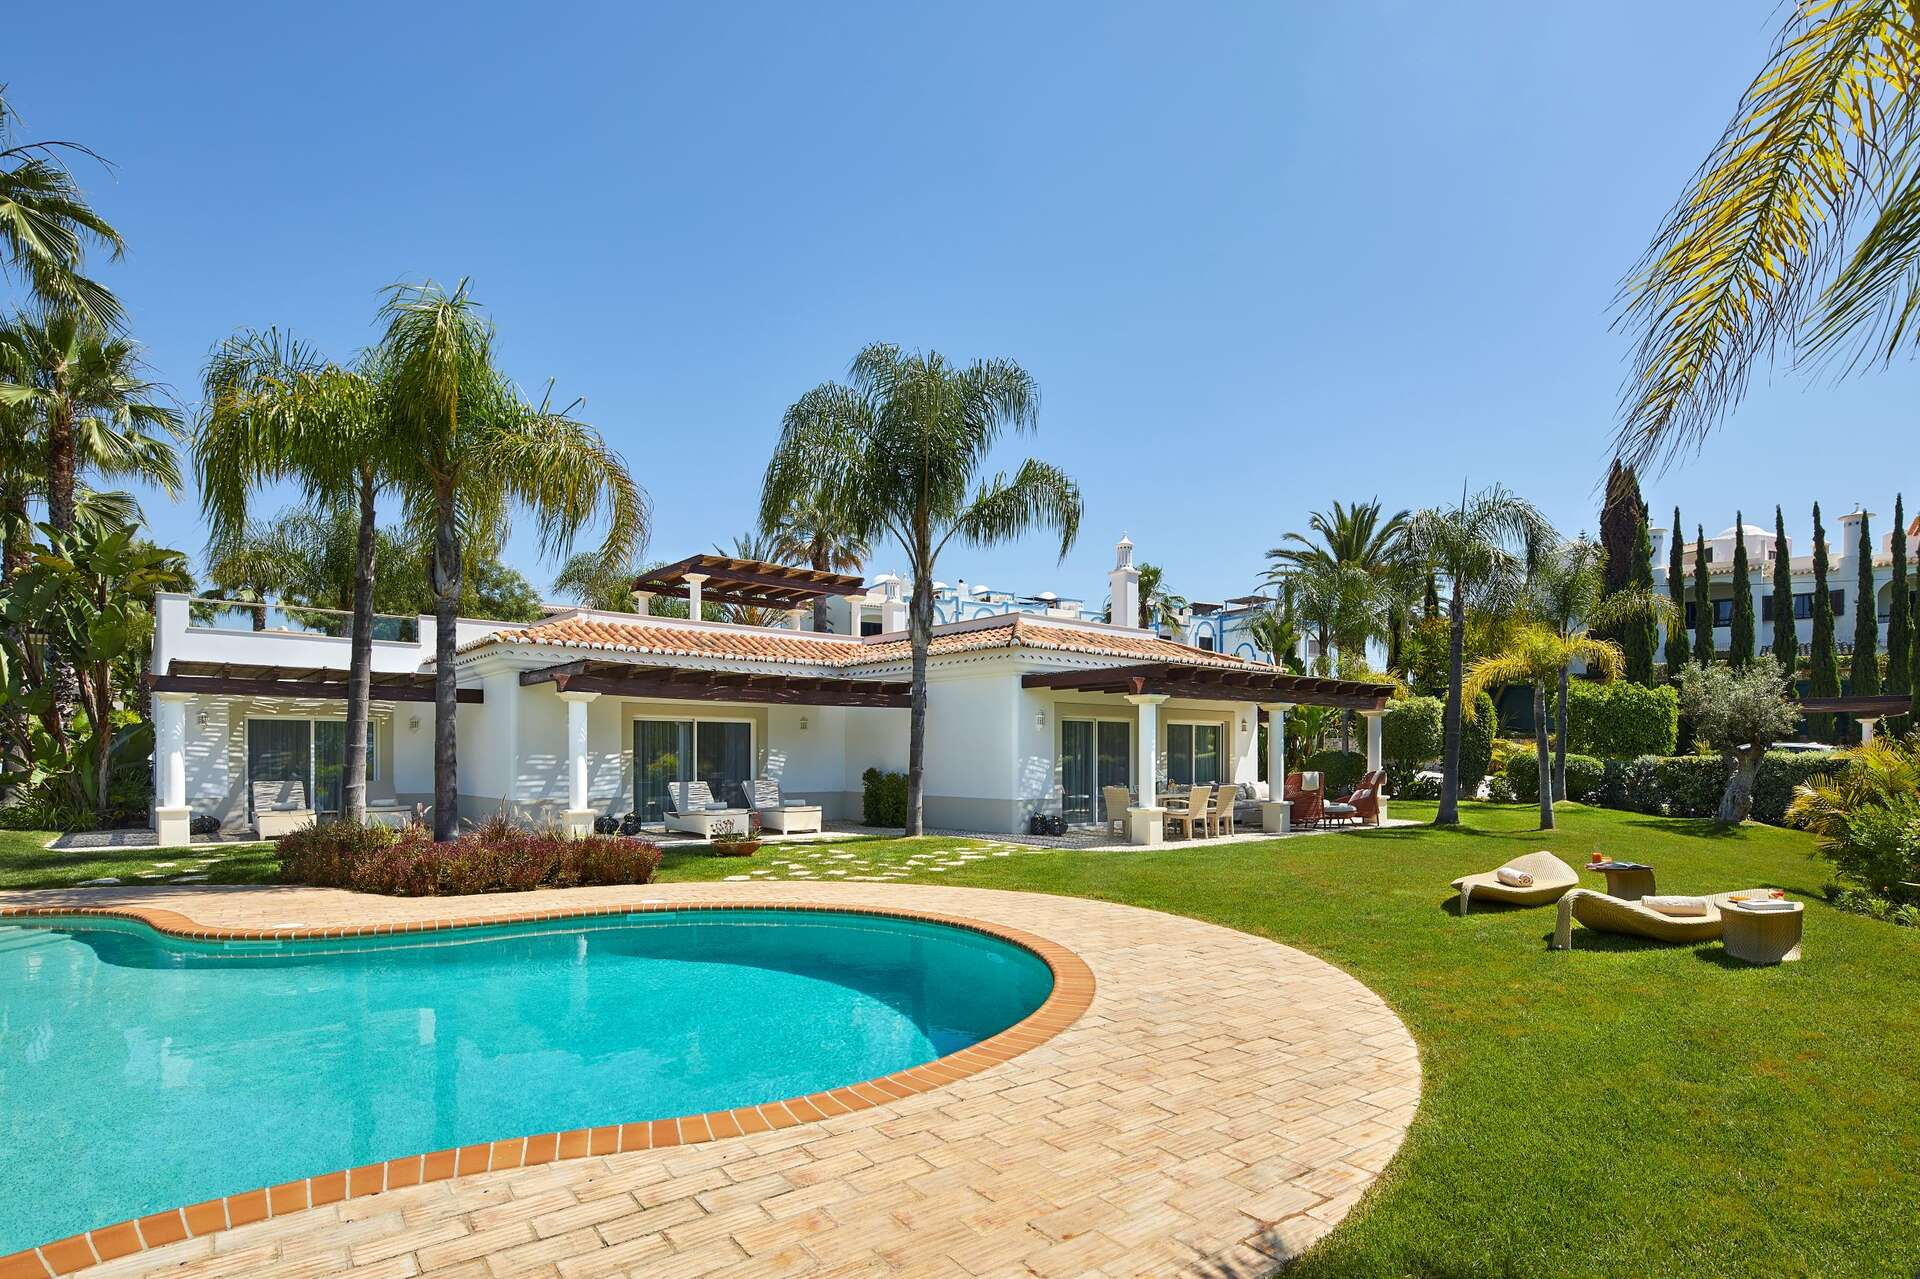 Luxury vacation rentals europe - Portugal - Algarve - Vila vita parc - Vila Al-Mar - Image 1/9